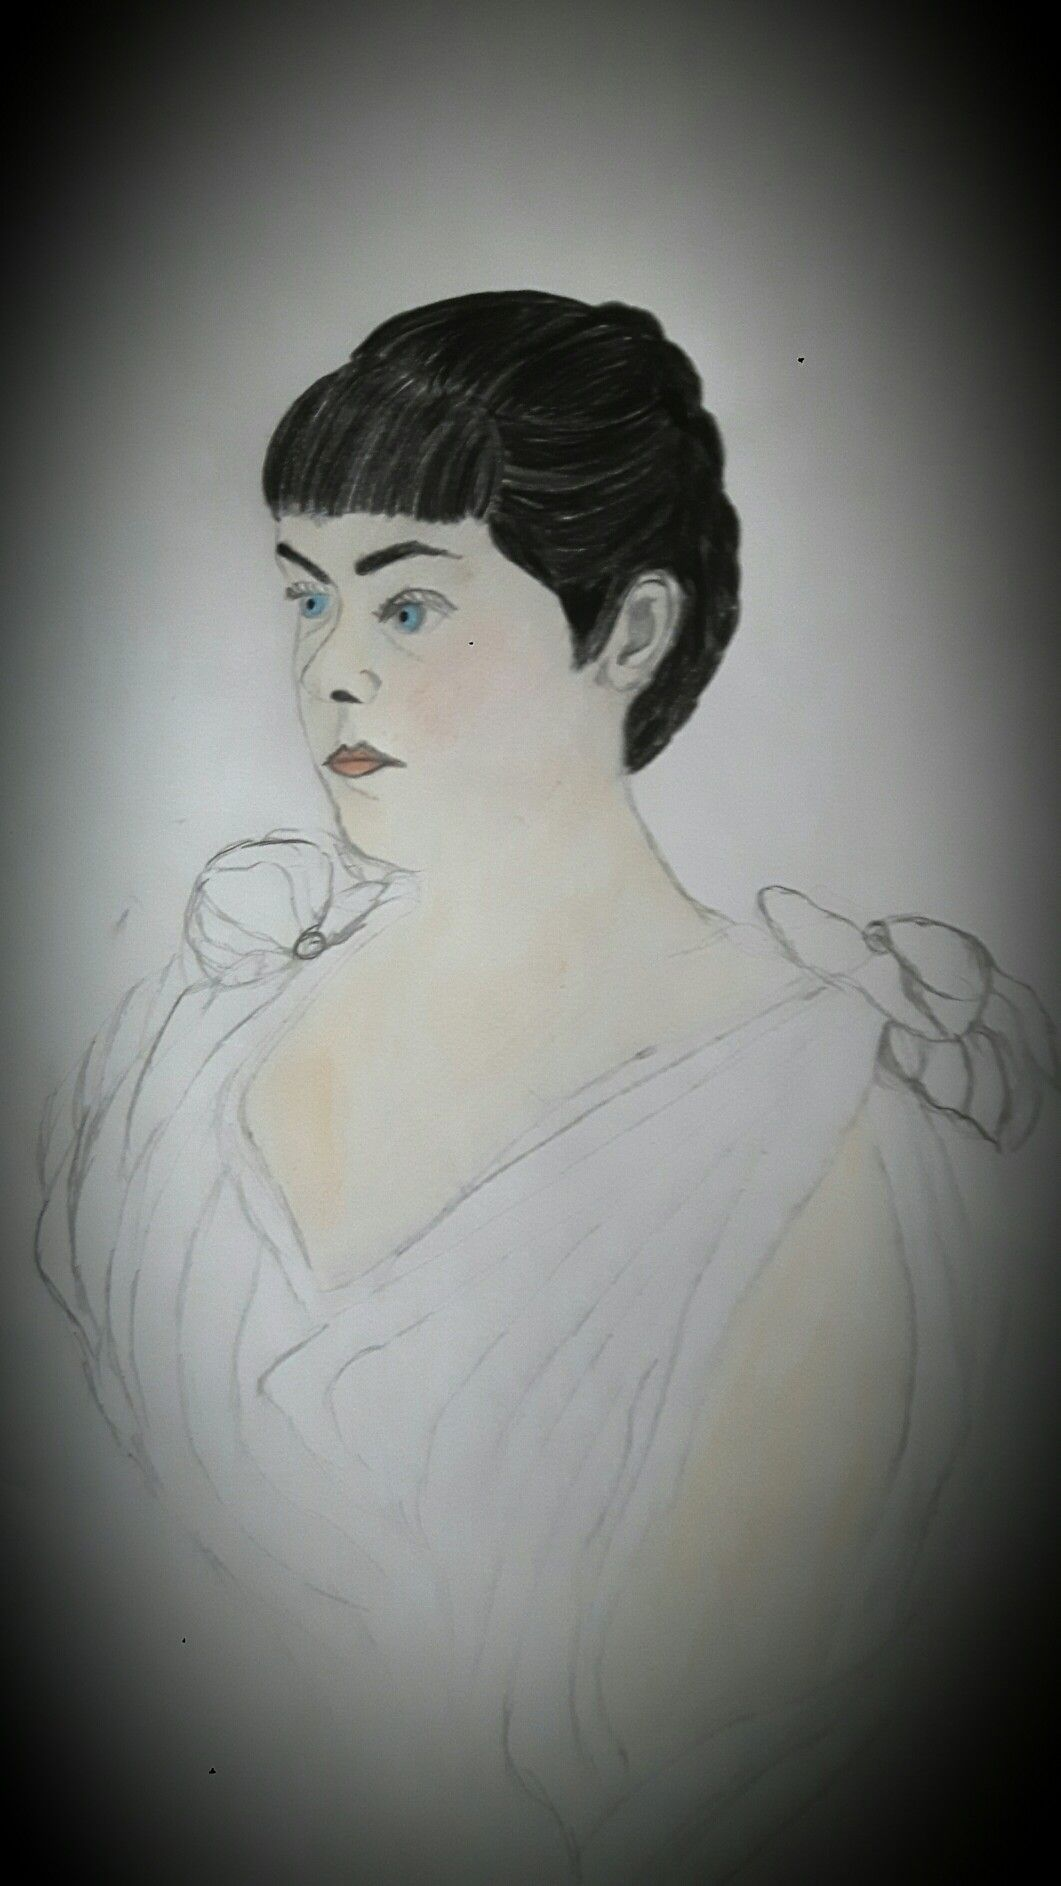 Portrait of Baroness Mary Vetsera drawn by me